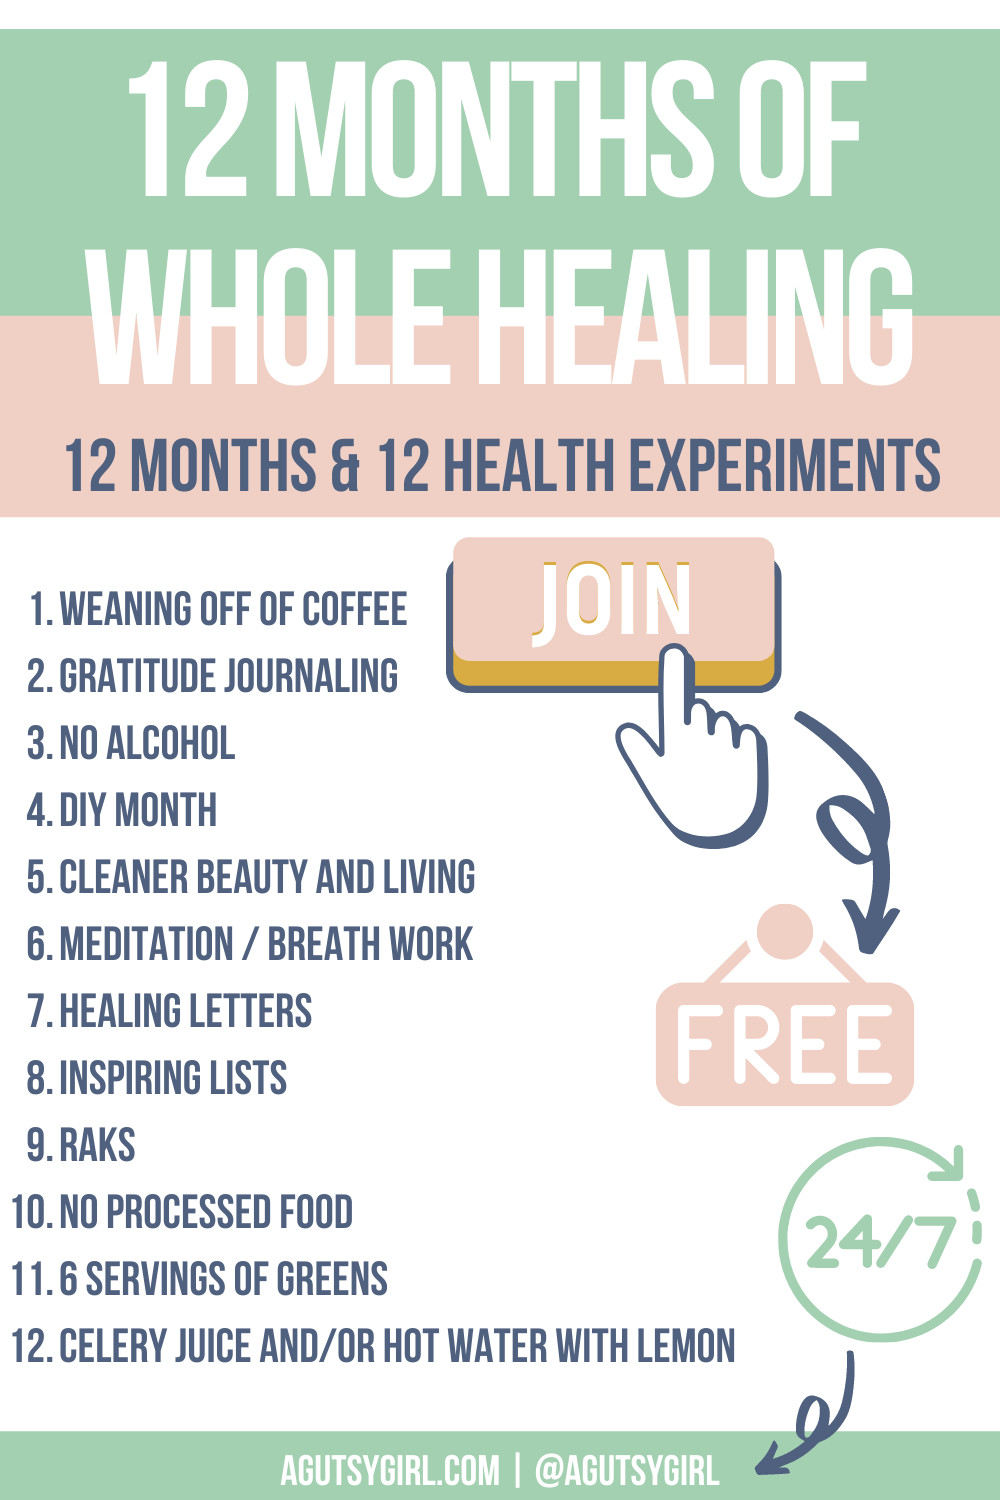 12 months of whole healing free experiments agutsygirl.com #healthchallenge #healthchallenges #mindbodygut #guthealth healthy challenge